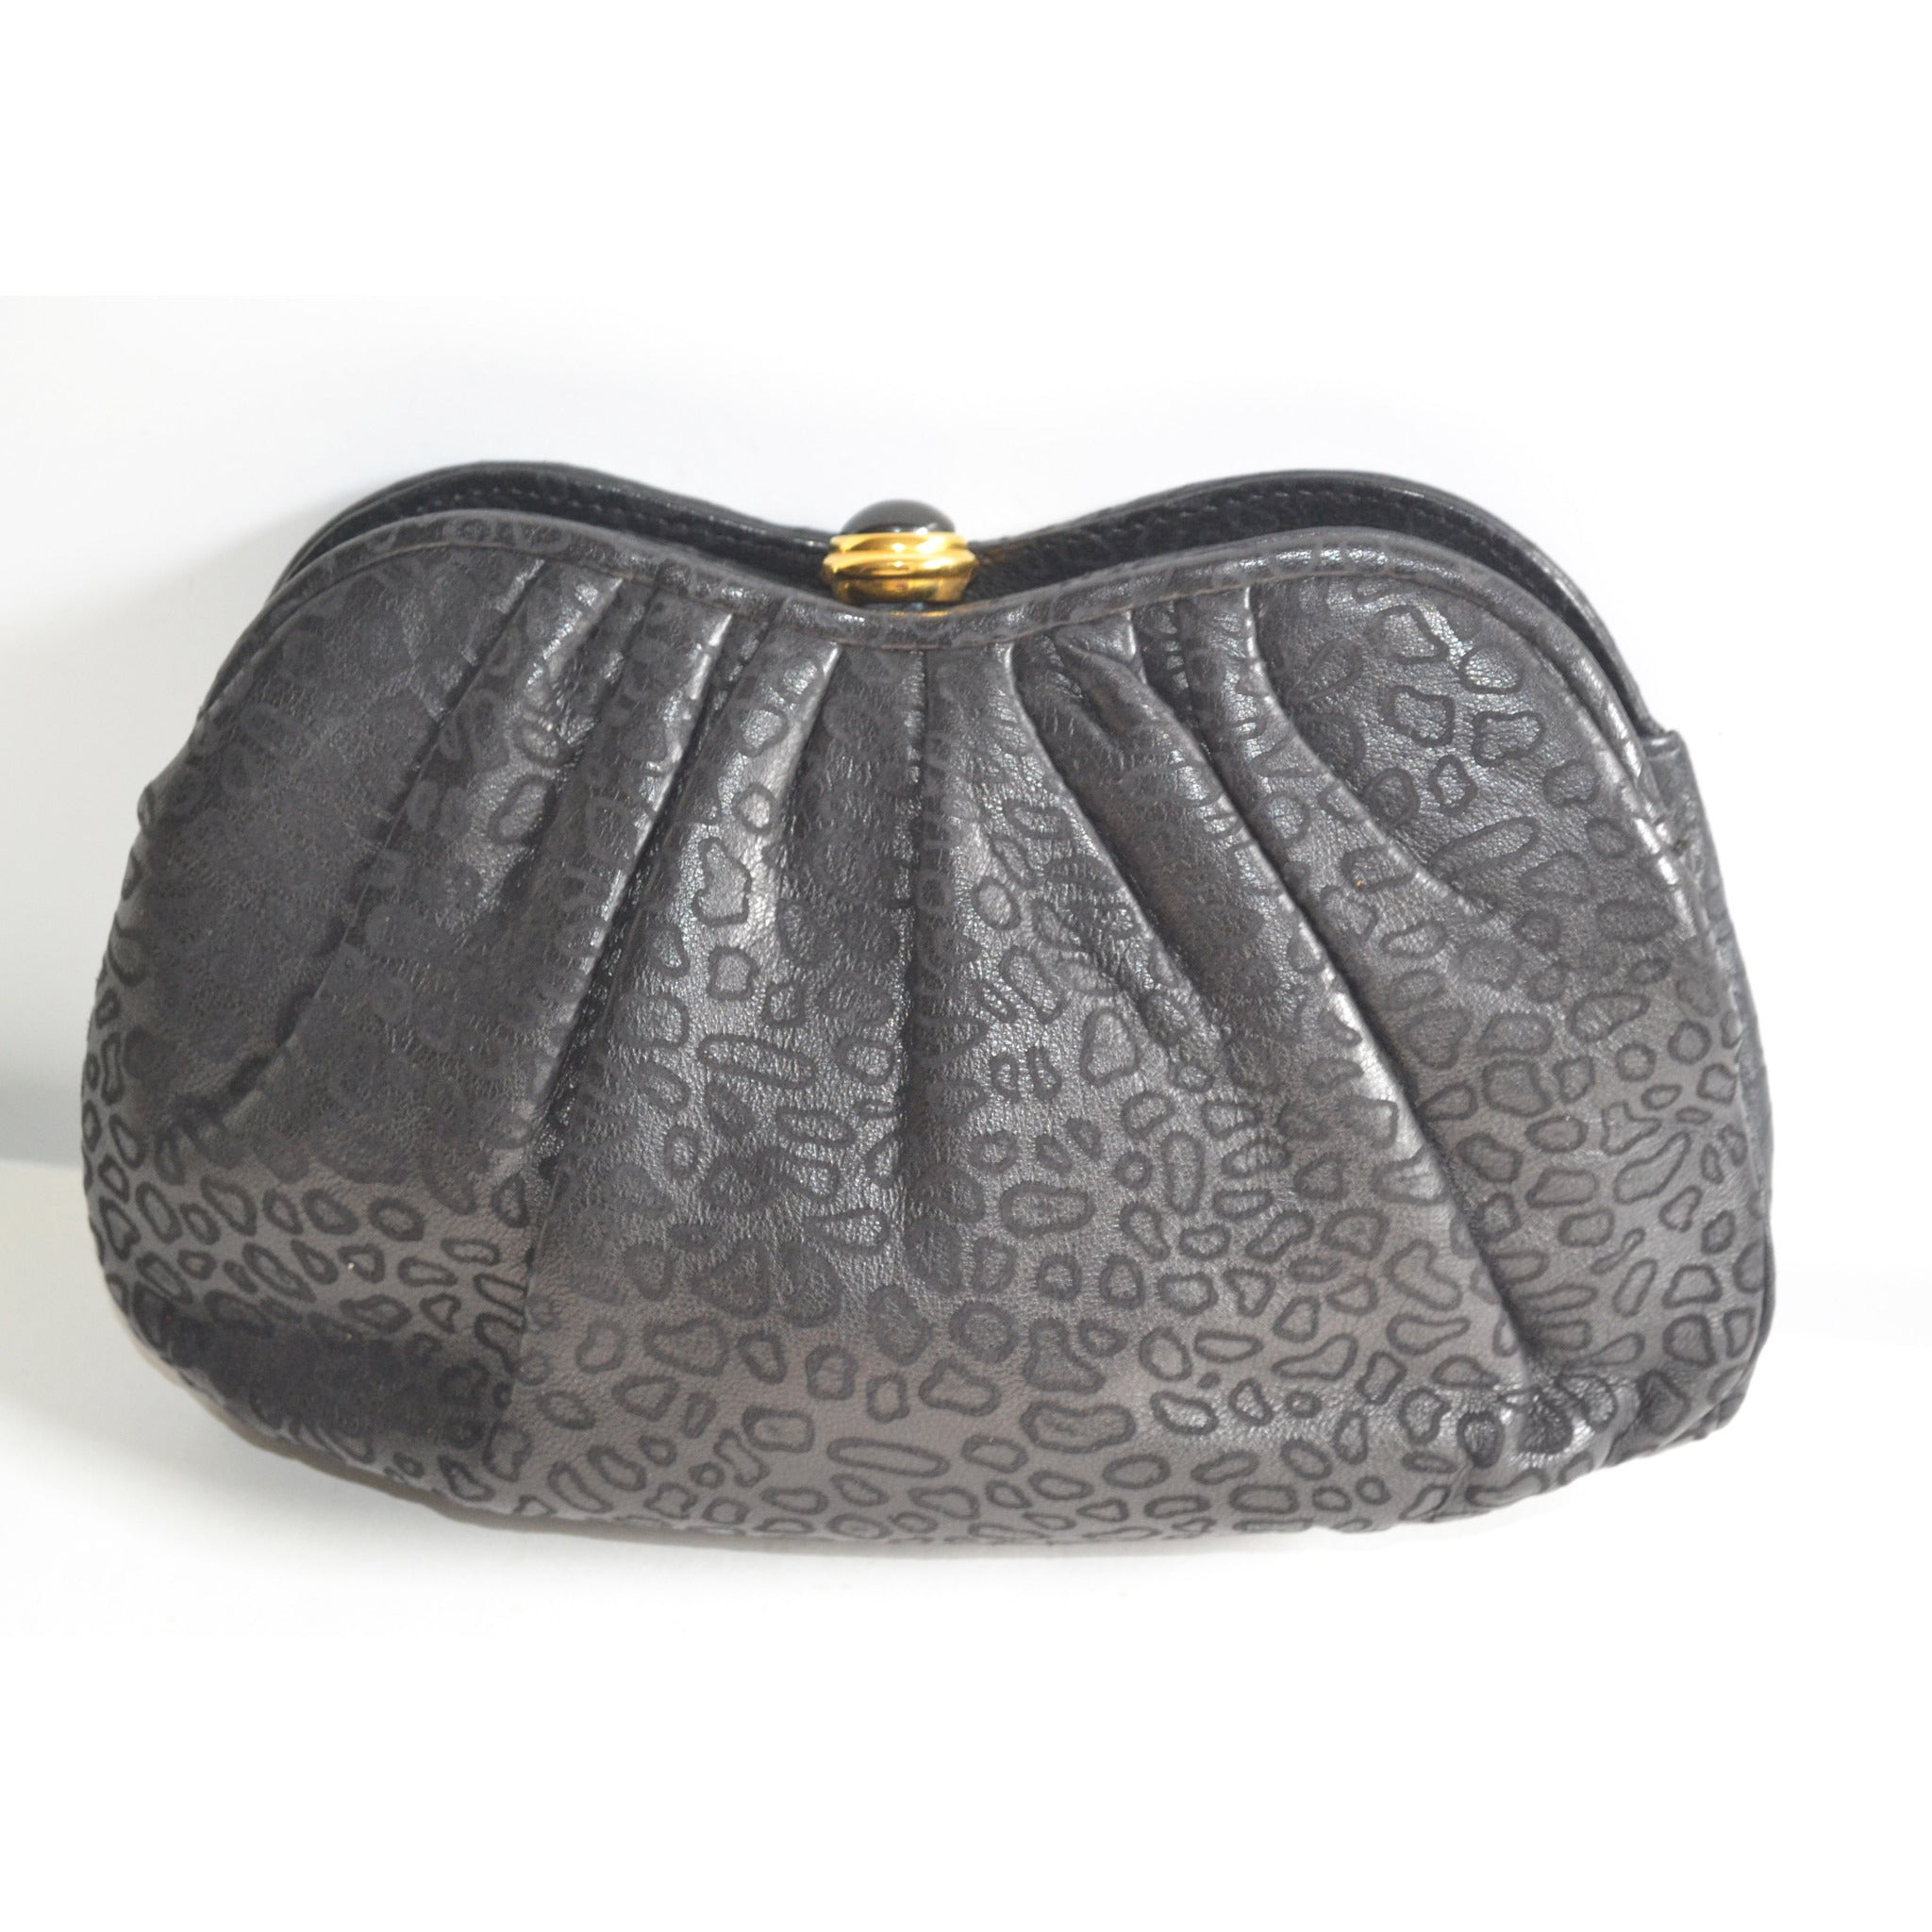 a4378880737 Vintage embossed black leather clutch purse tiras quirkyfinds jpg 2048x2048 Leather  clutch handbags